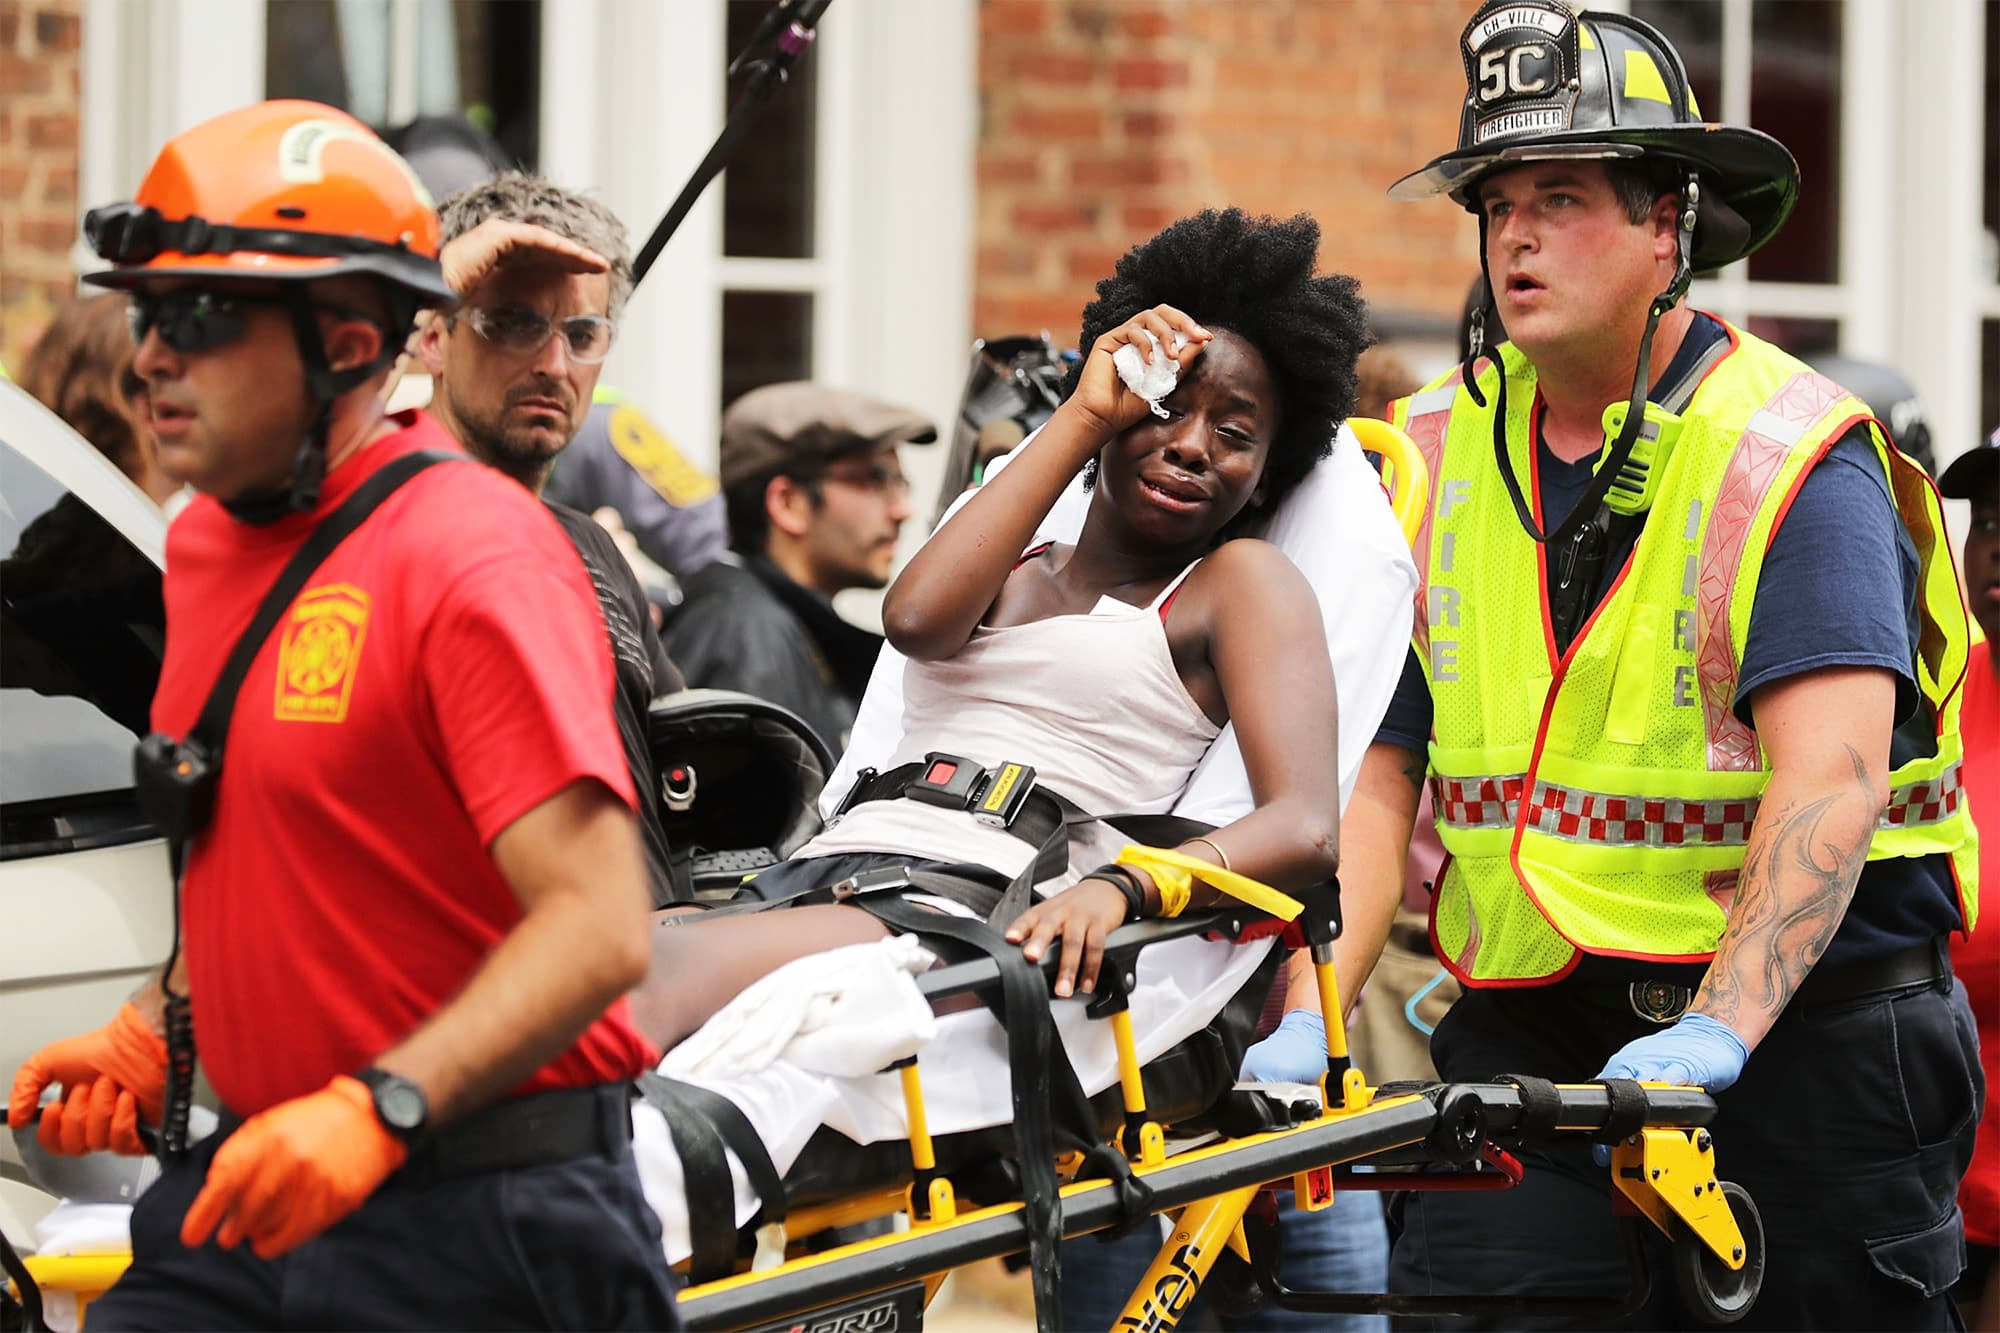 Rescue workers move victims on stretchers after car plowed through a crowd of counter-demonstrators marching through the downtown shopping district in Charlottesville. ─ AFP